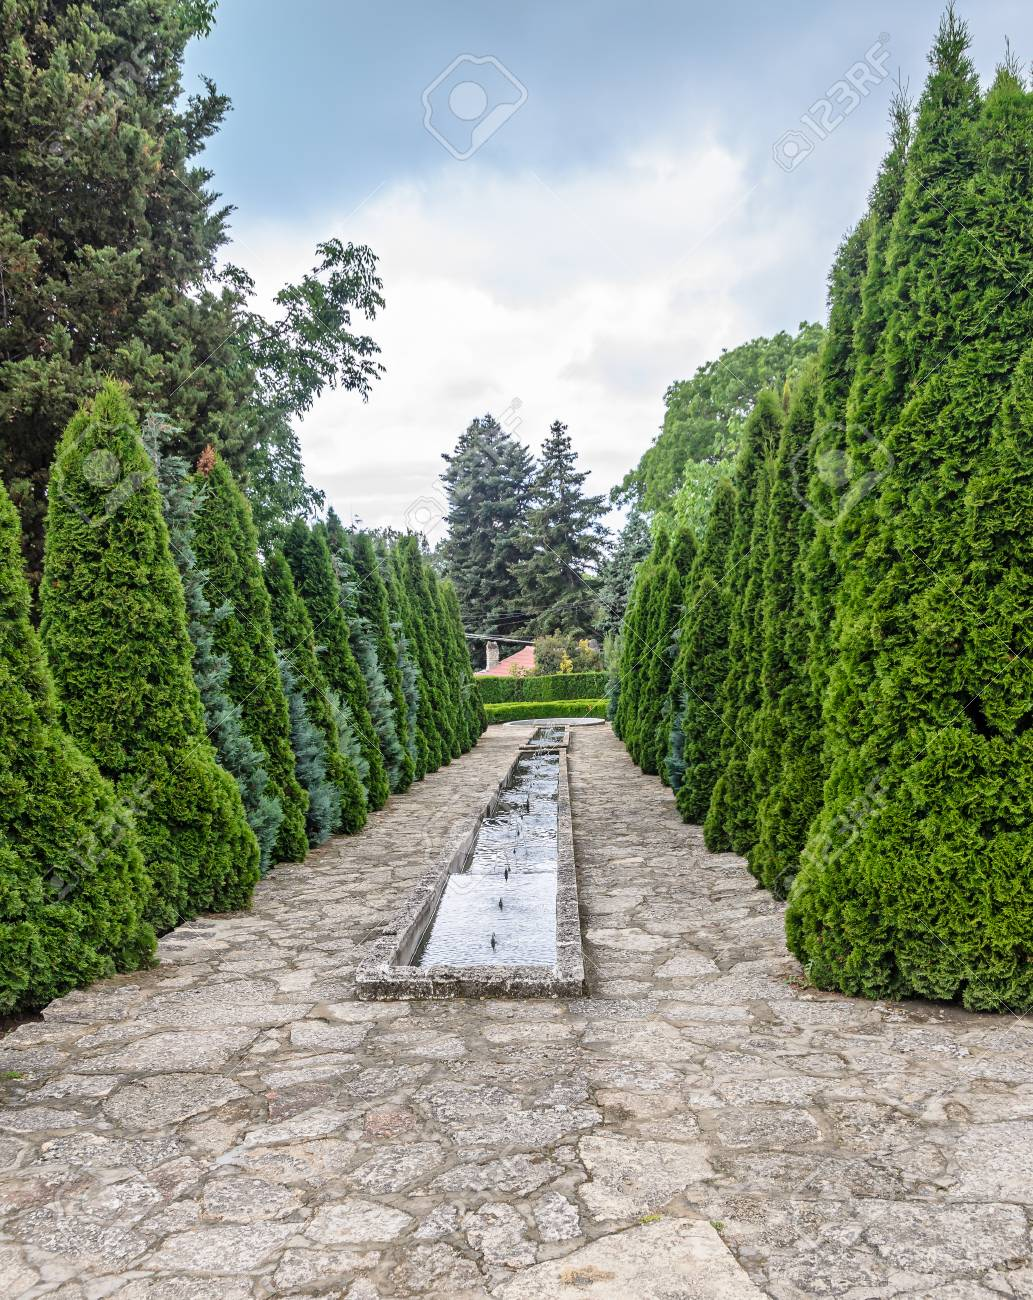 Botanical Garden With Green Pine Trees And Water Decorative Fountains